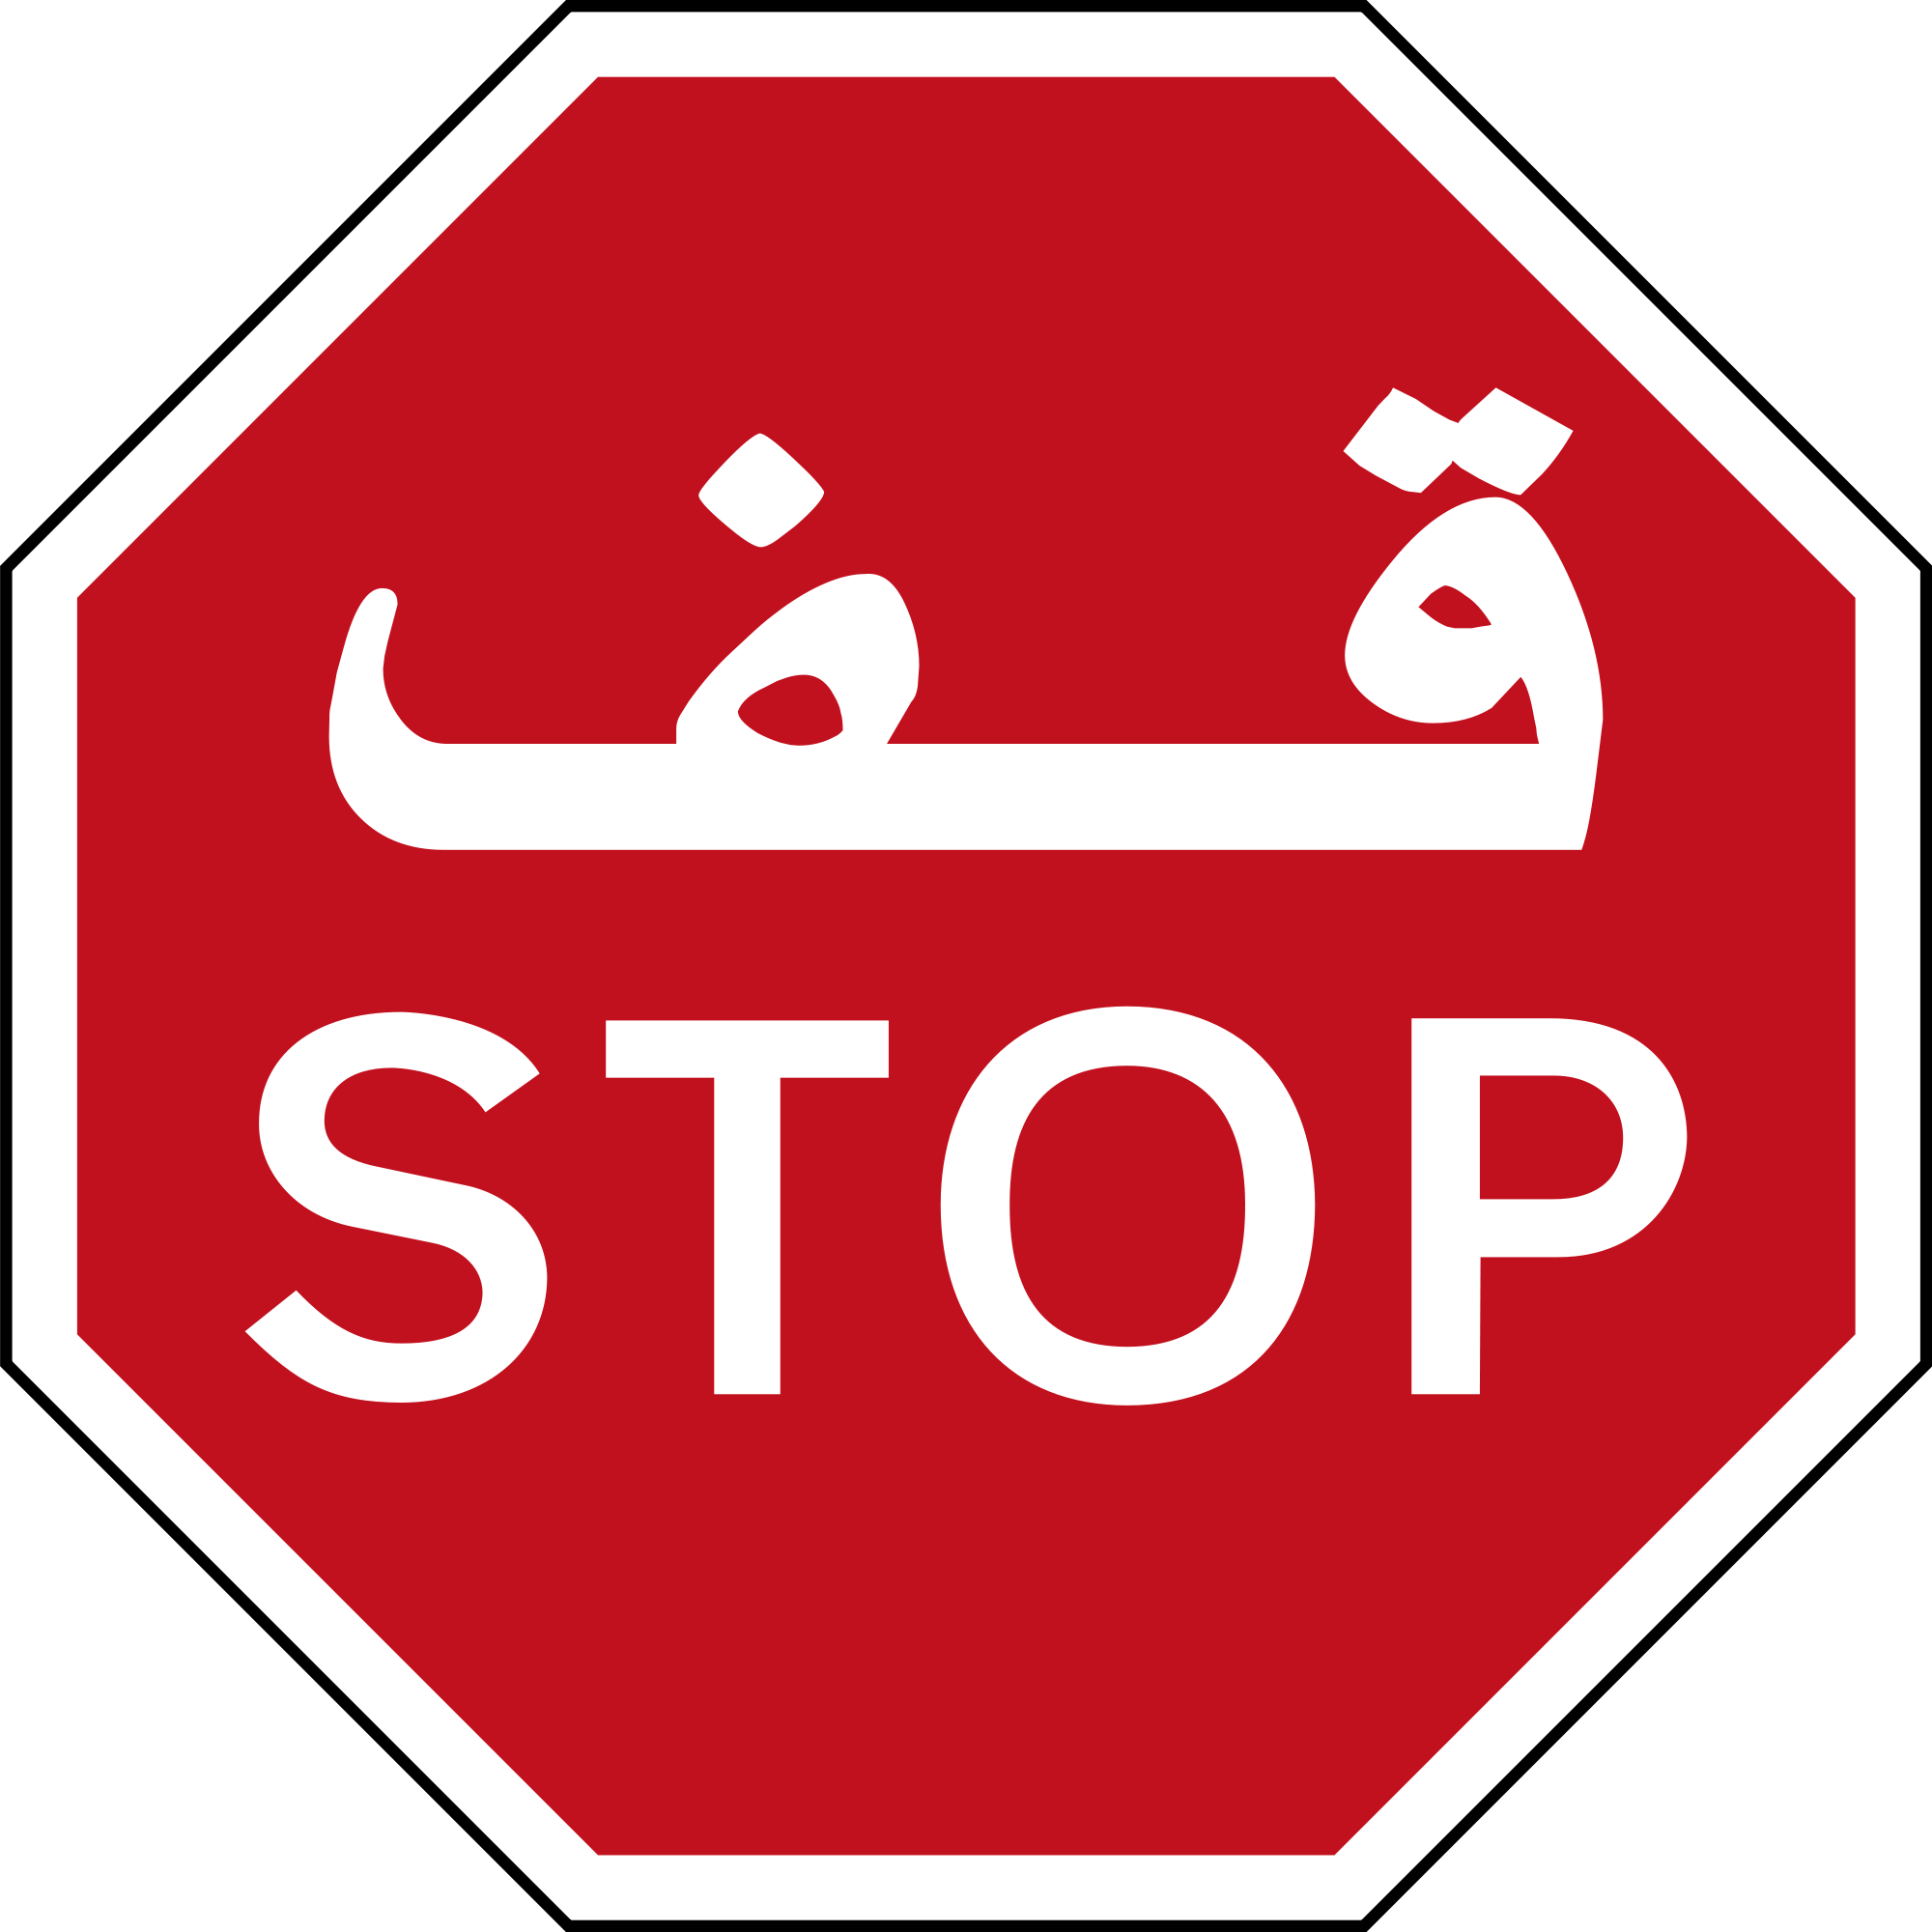 Stop png. Sign images free download